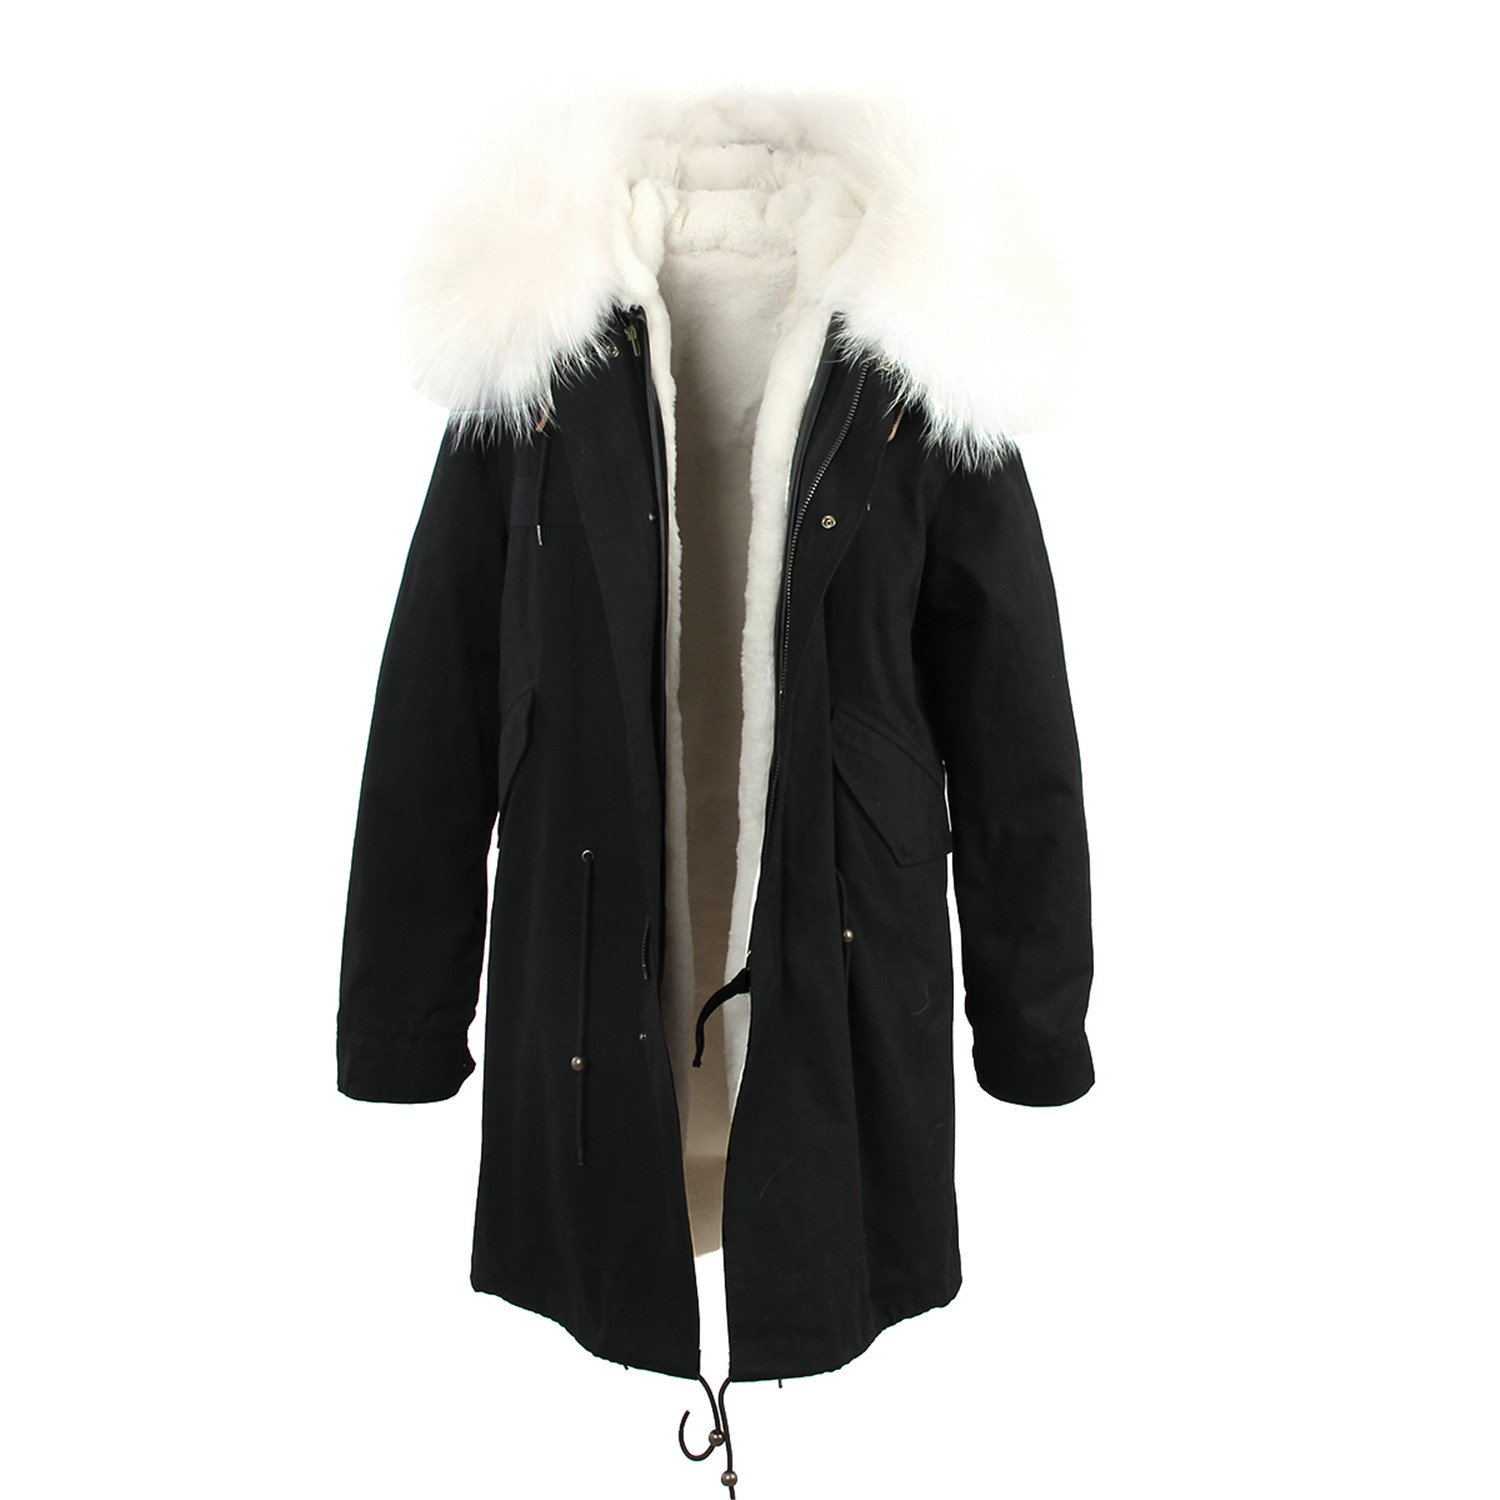 ADC-Hotsell women's army green Large color raccoon fur hooded coat outwear long detachable lining winter jacket brand style color 8 S